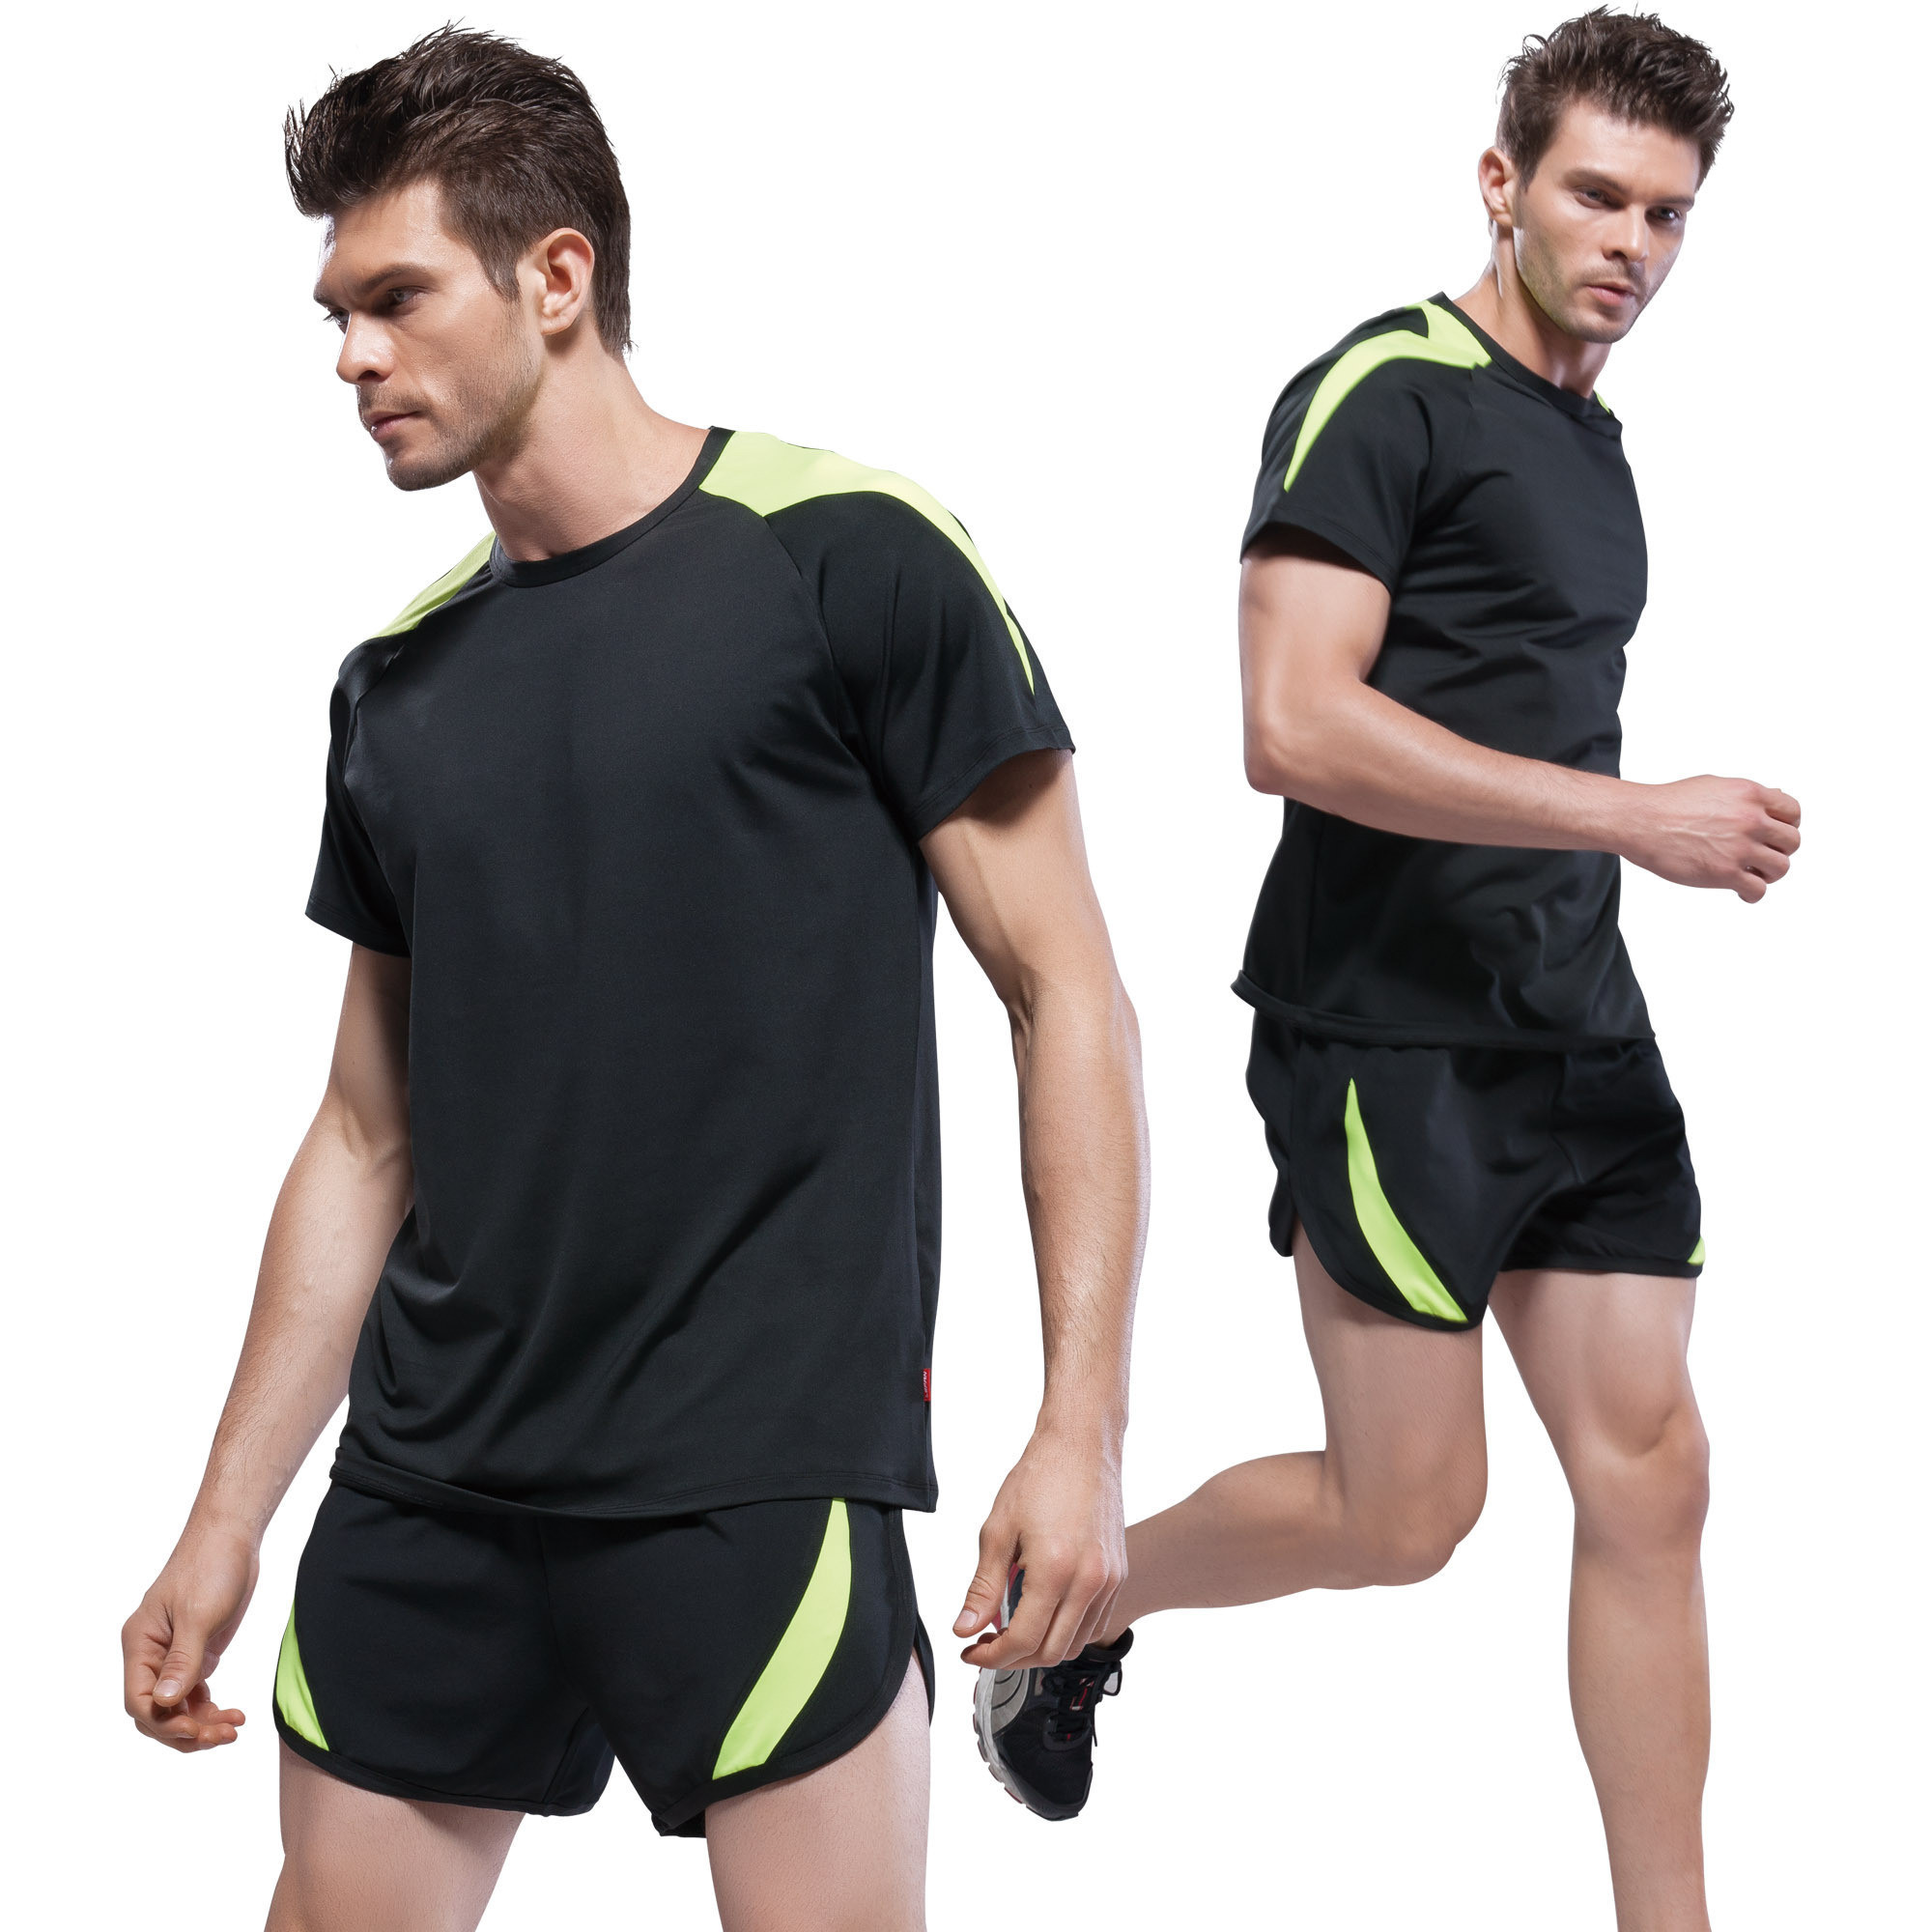 2012-spring-and-summer-font-b-Men-b-font-workout-clothes-fitness-set-yoga-clothing-21810